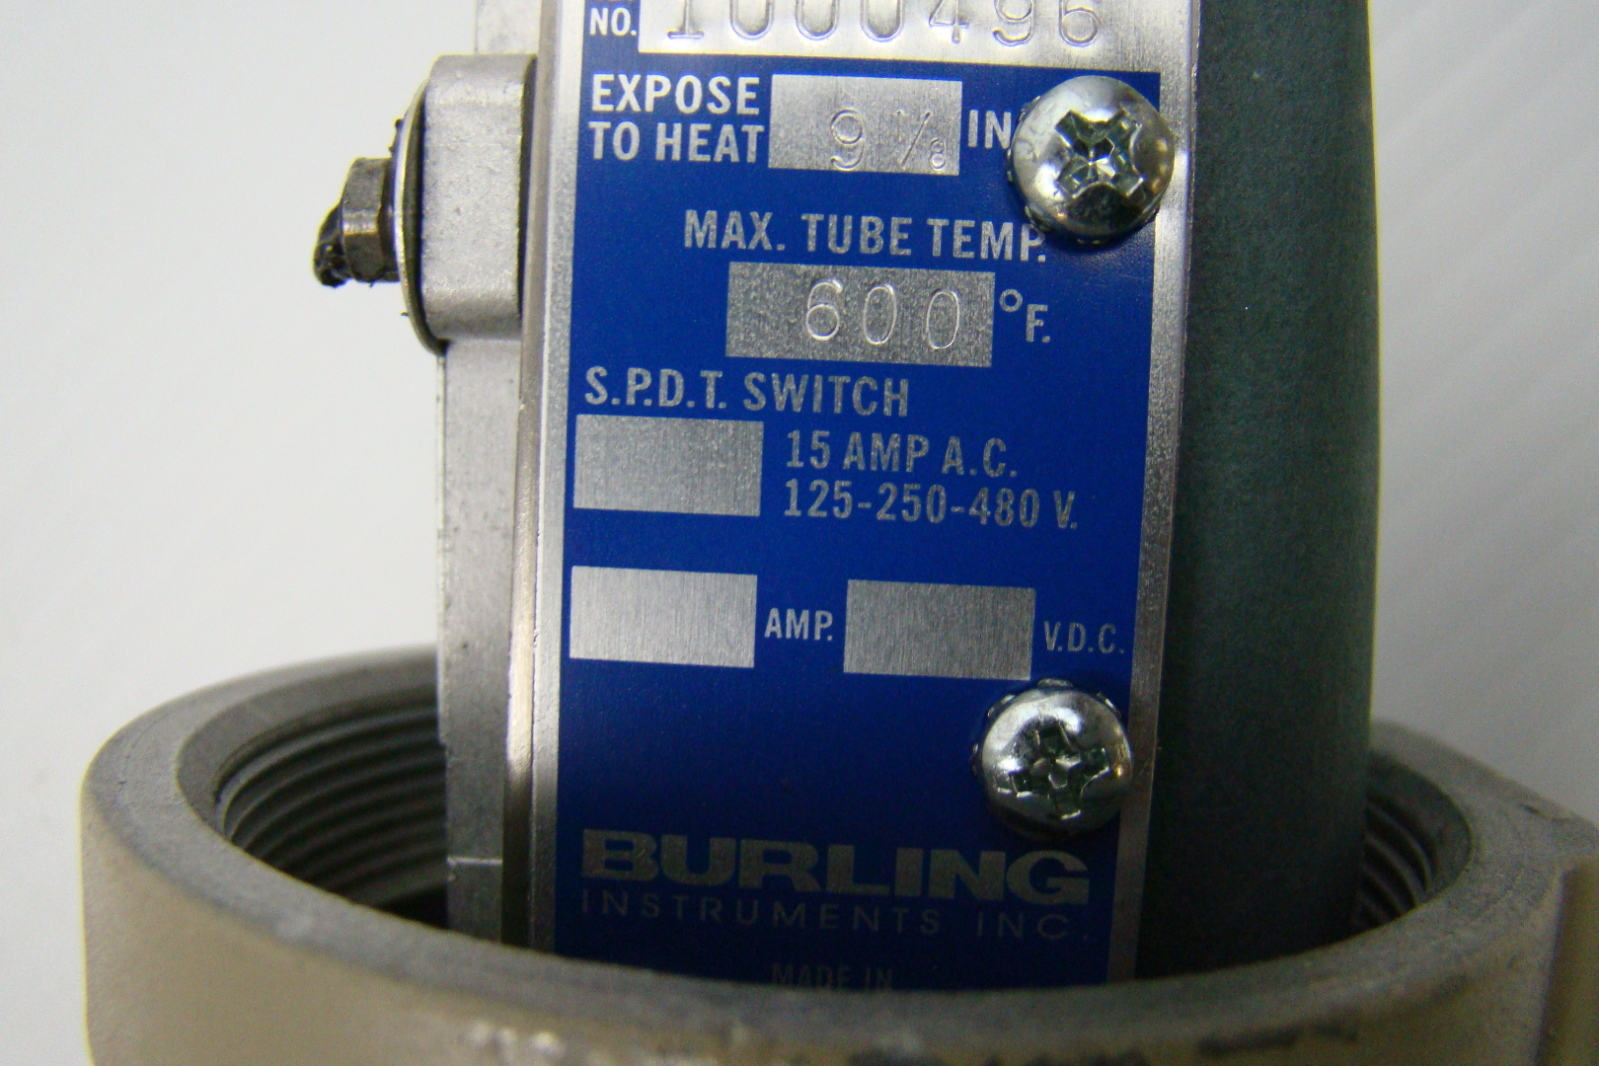 Details about Burling Instruments Temperature Control Switch B 2C #0E2C76